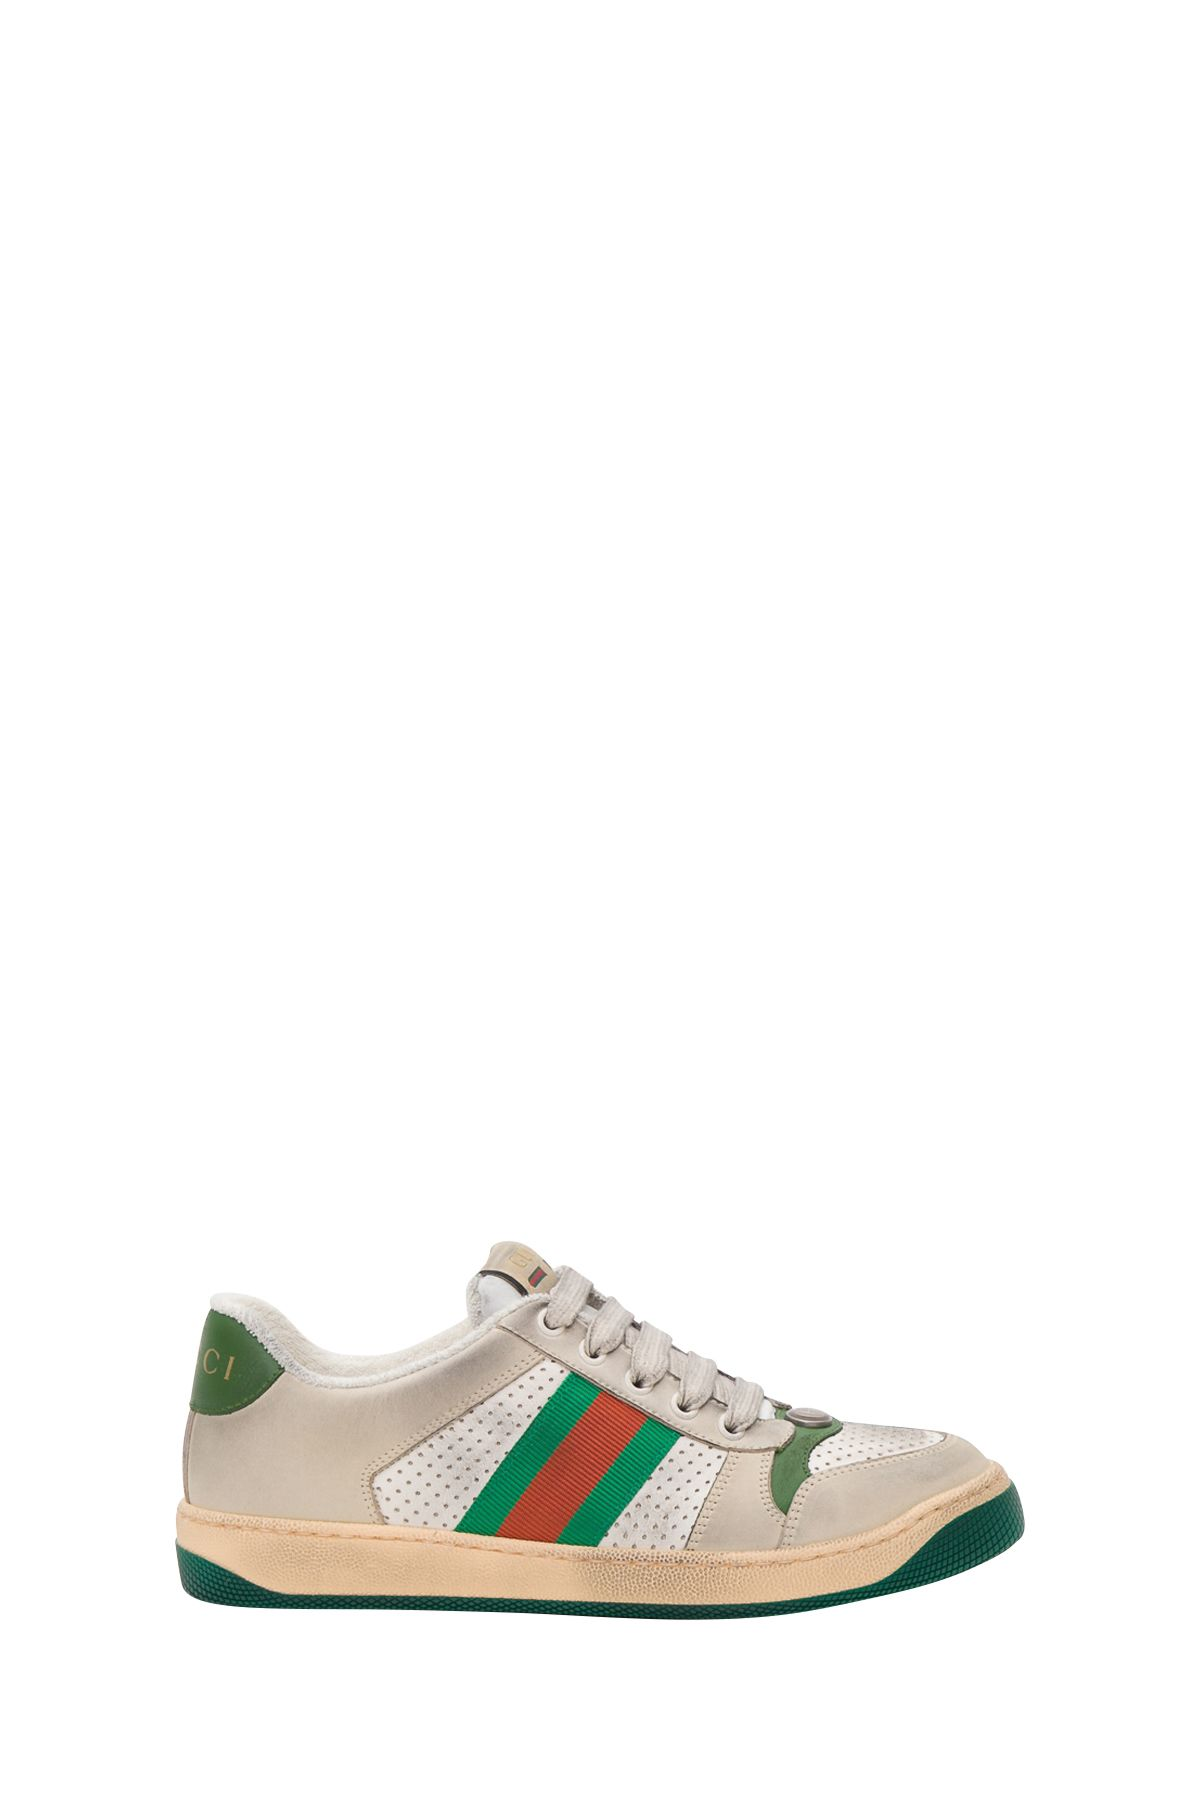 Gucci Sneakers Gucci Screener Woman Sneaker